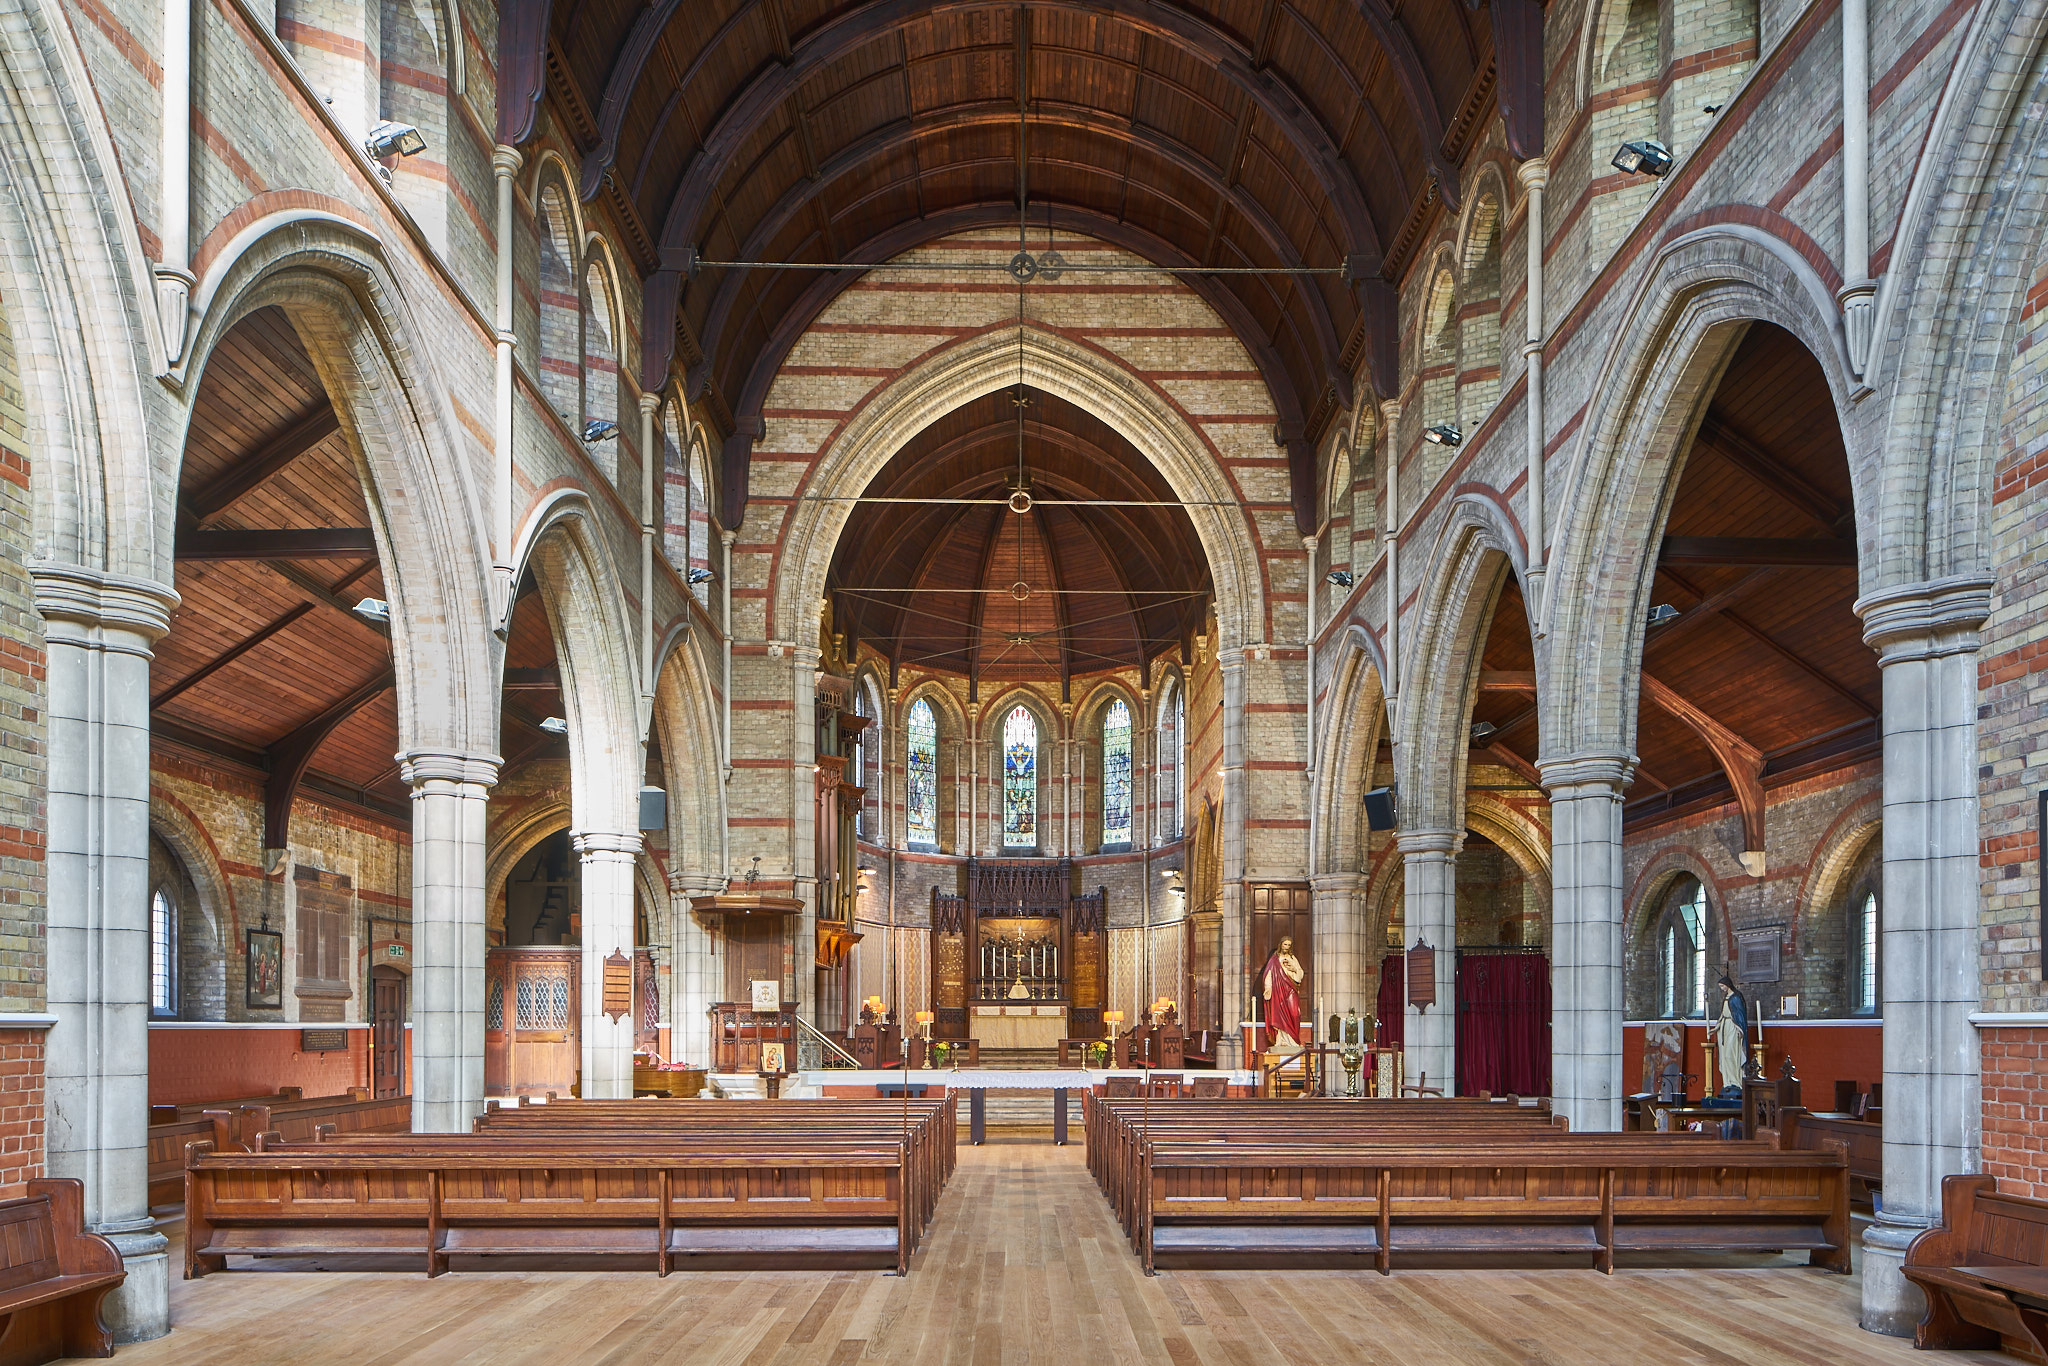 Presidents' Award for re-ordering and alterations: Emmanuel Church, West Hampstead (Pews reinstated to nave over new oak flooring)